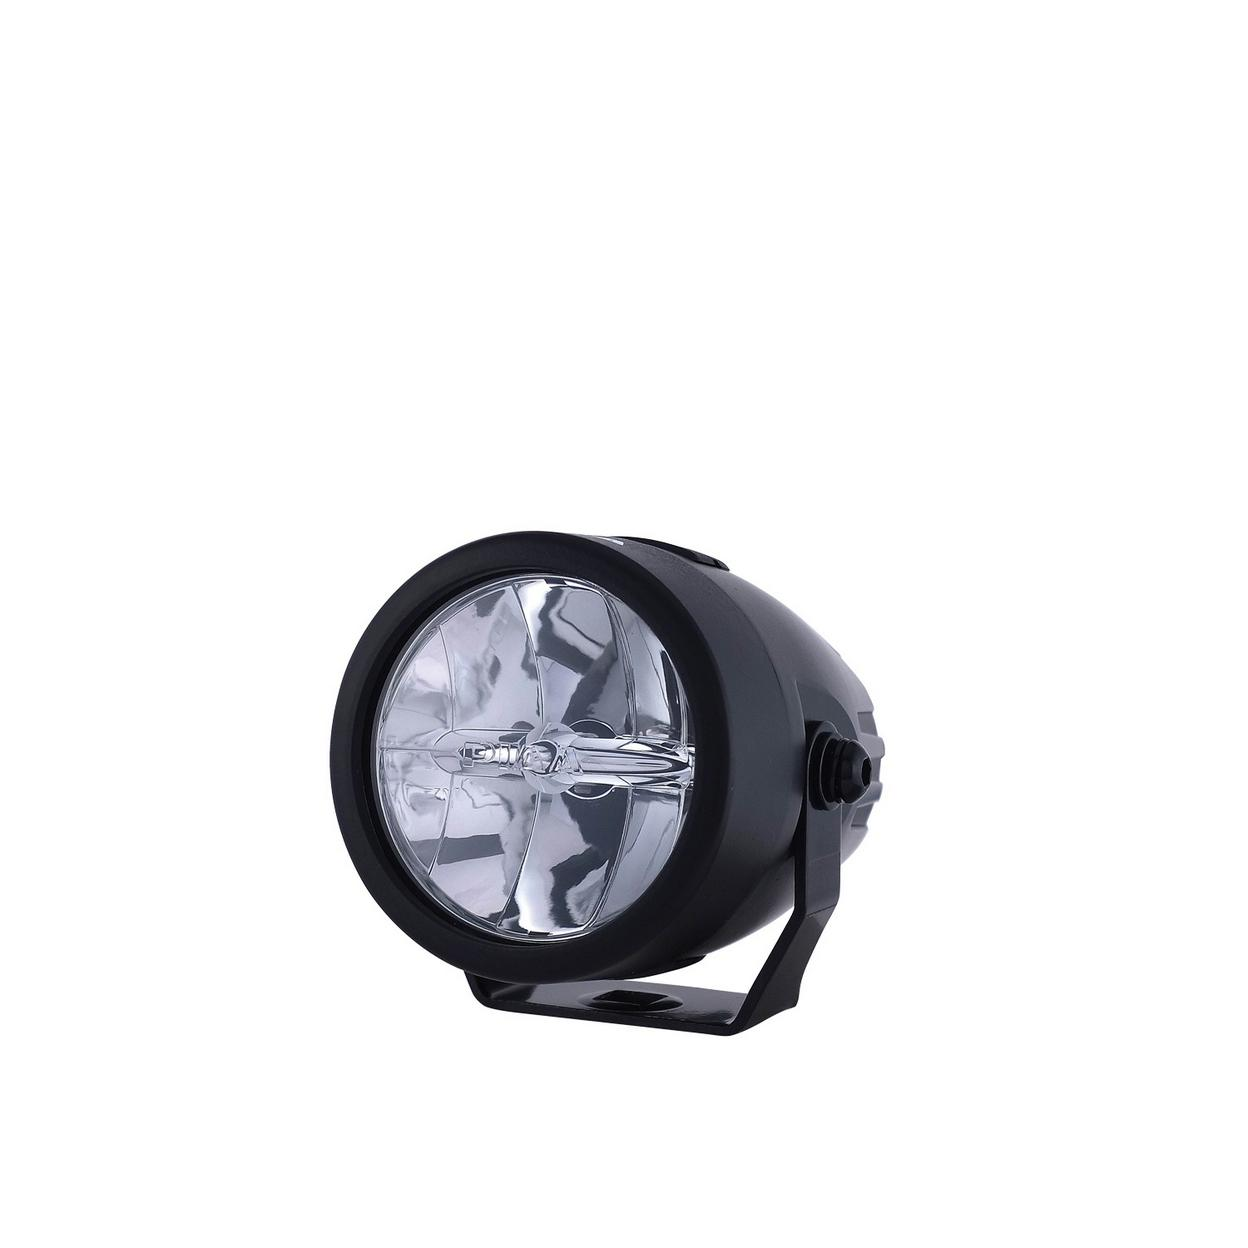 LP270 2.75IN. LED DRIVING LIGHT SINGLE; SAE COMPLIANT